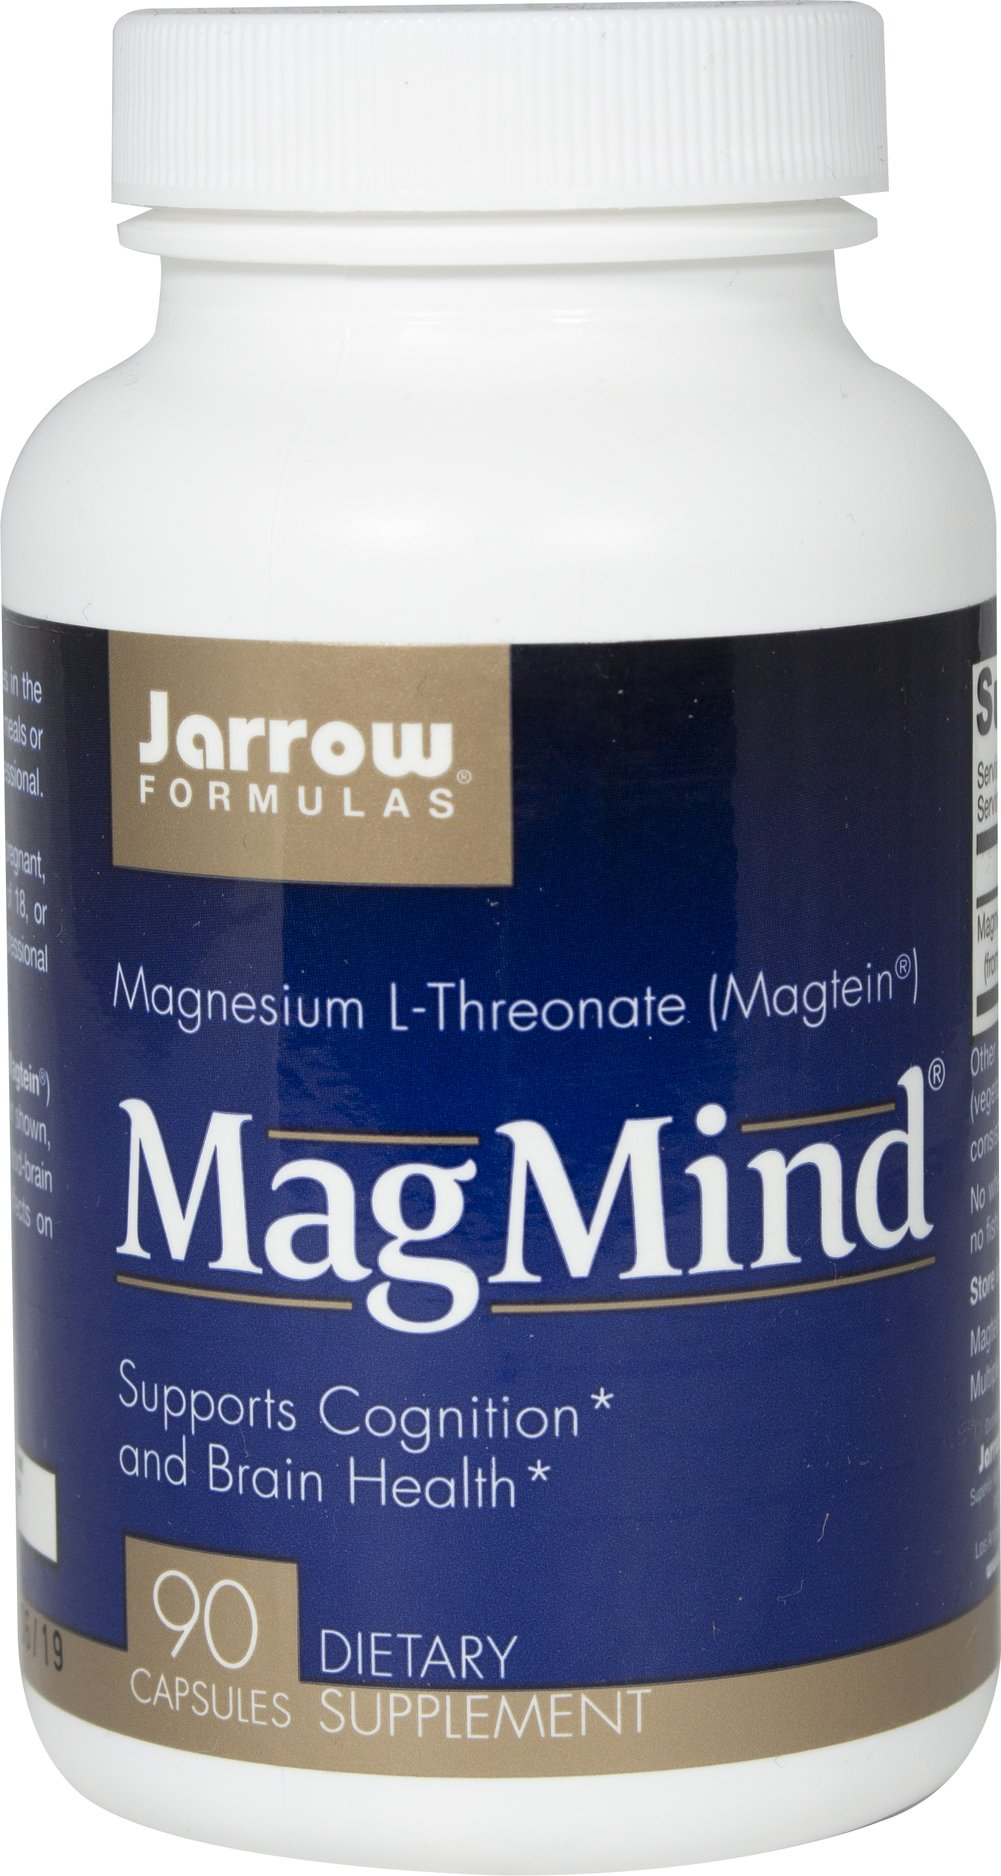 MagMind™ Magnesium L-Threonate <p><strong>From the Manufacturer's Label: </strong></p><p>MagMind™ Magnesium L-Threonate is manufactured by  Jarrow Formulas.</p><p></p> 90 Vegi Caps  $27.27